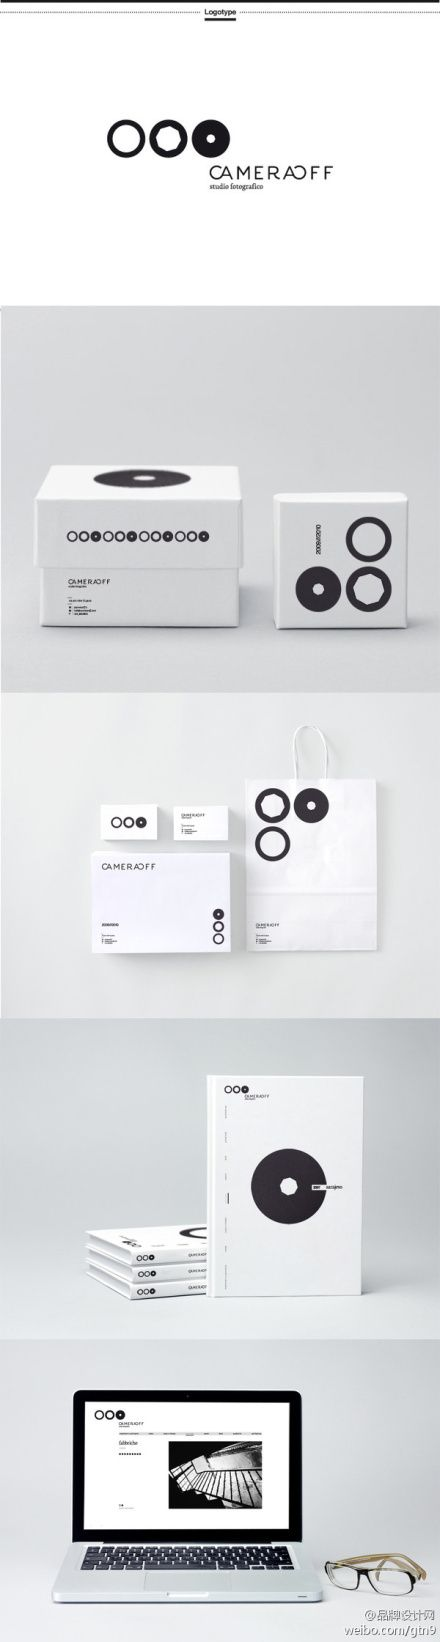 ************* Camera... | #stationary #corporate #design #corporatedesign #identity #branding #marketing < repinned by www.BlickeDeeler.de | Take a look at www.LogoGestaltung-Hamburg.de